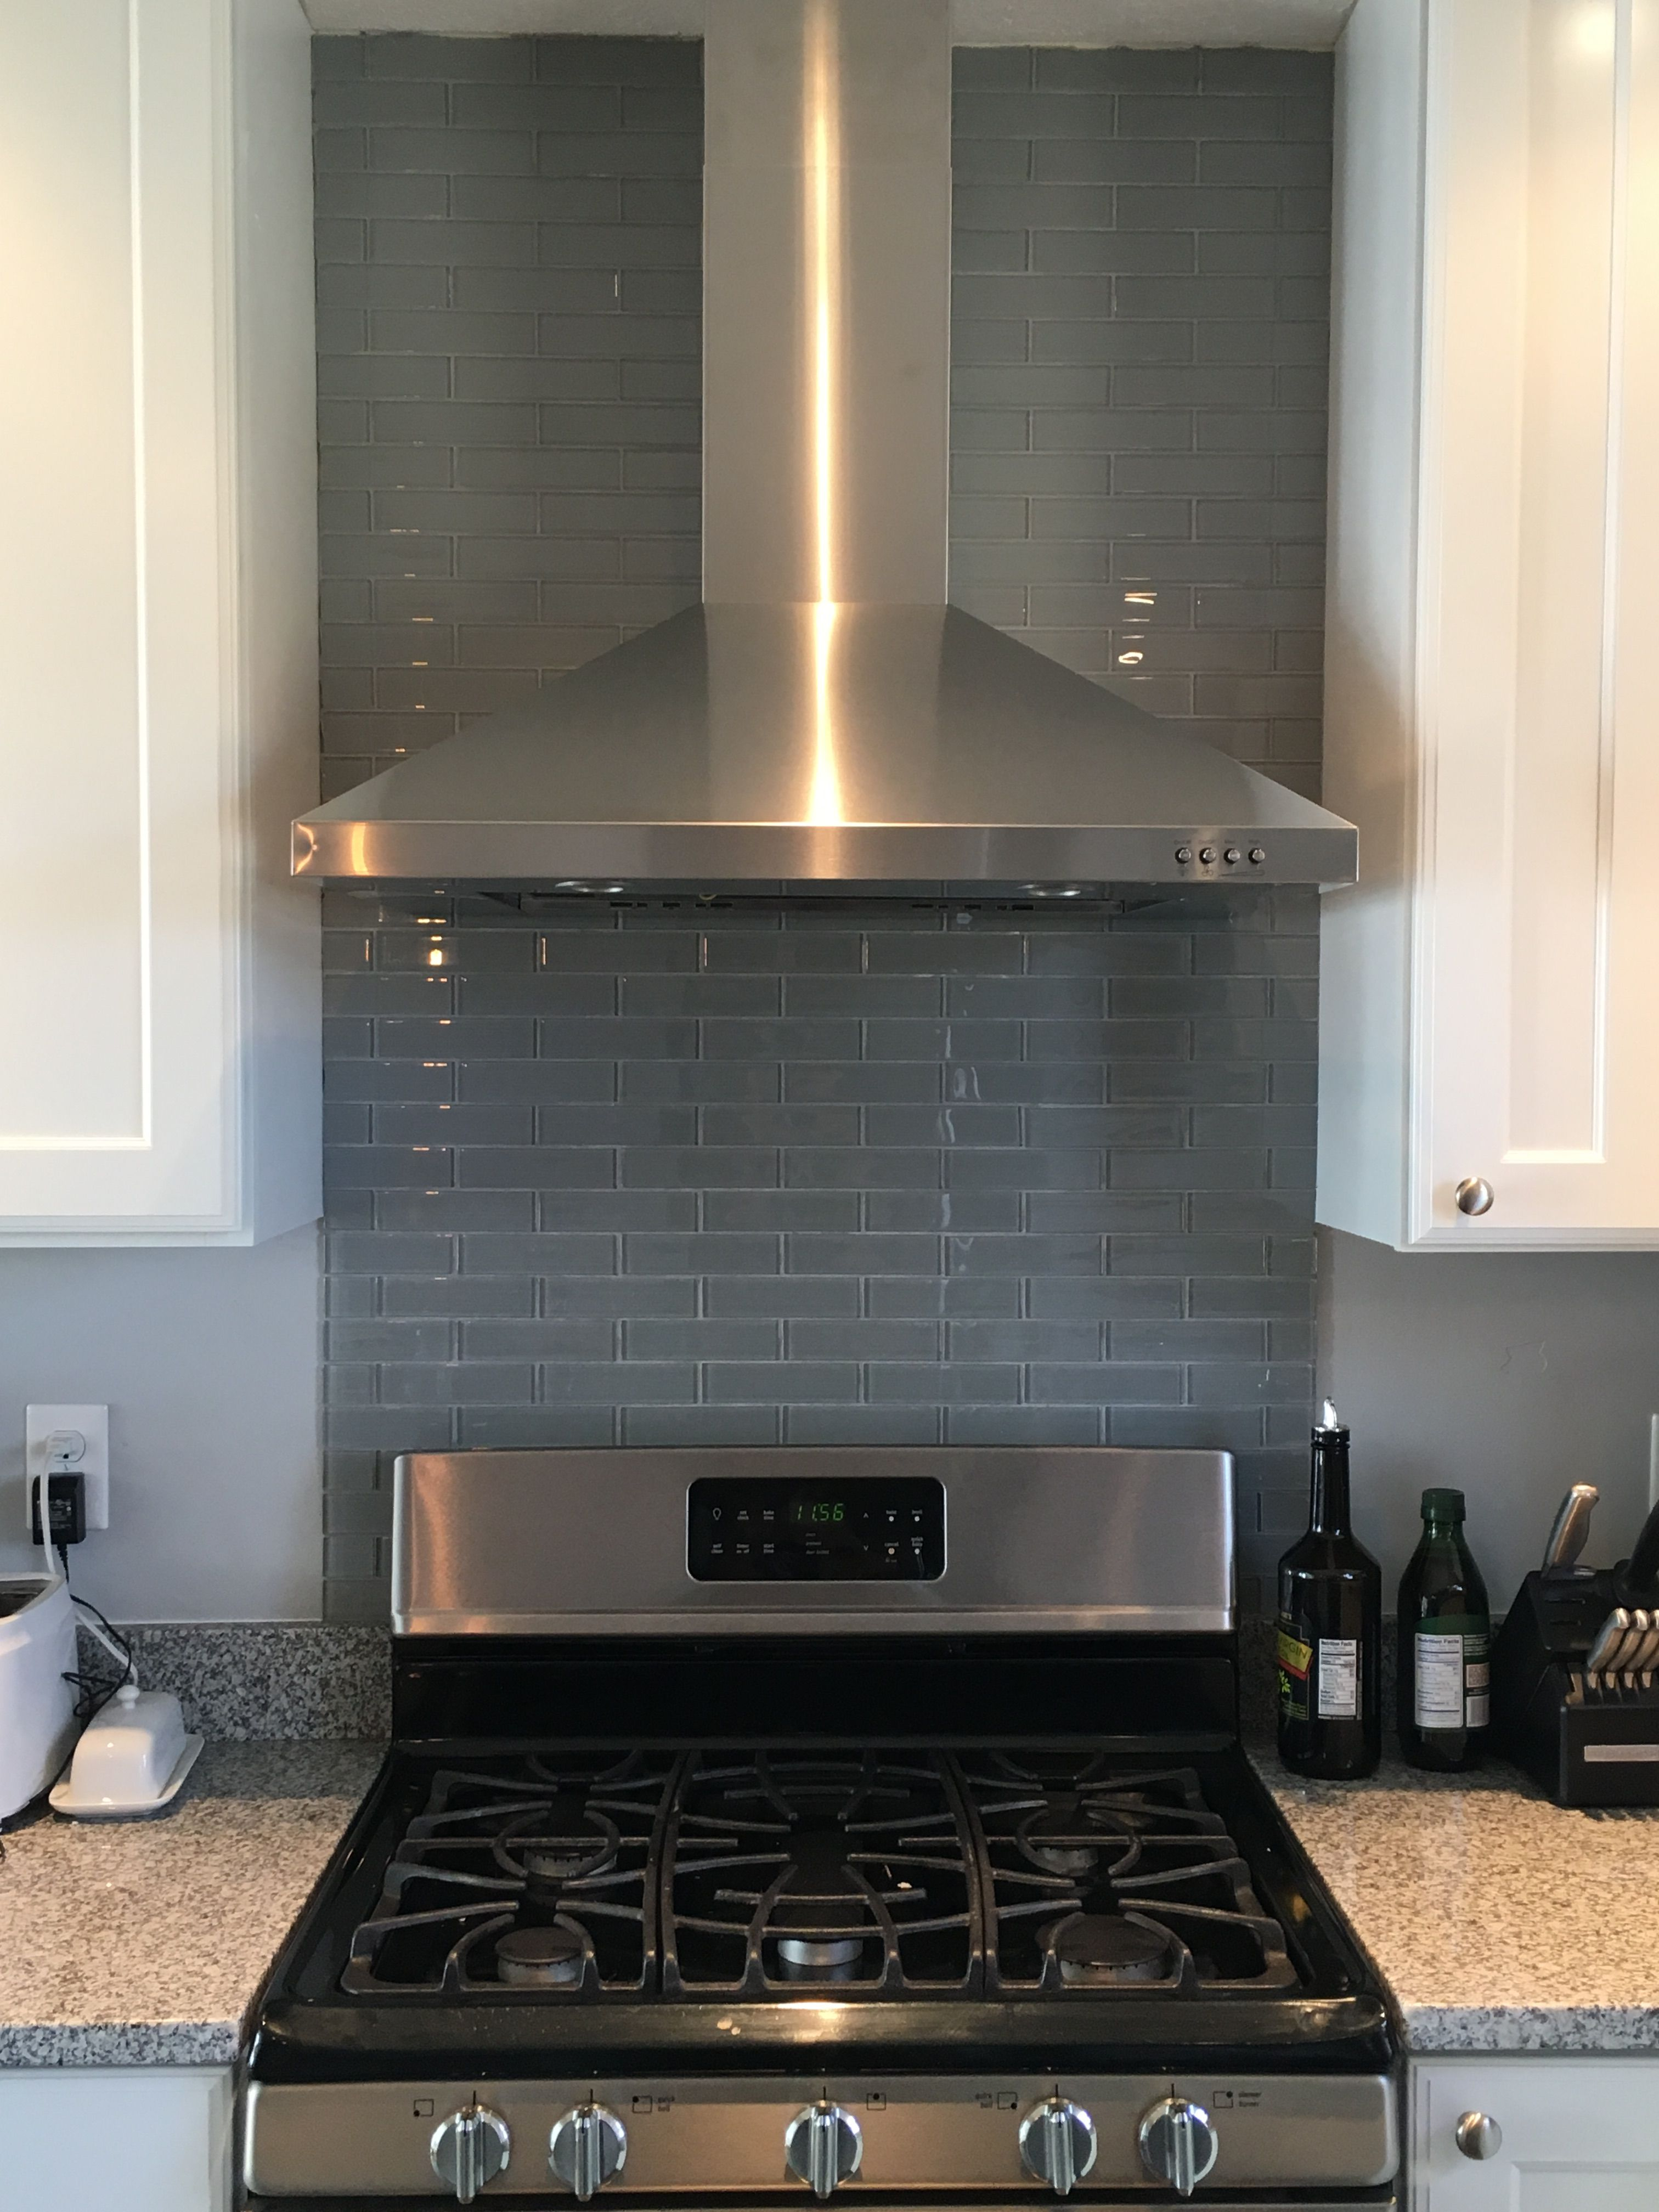 Our Kitchen Reno Glass Backsplash Behind The Gas Stove And Range